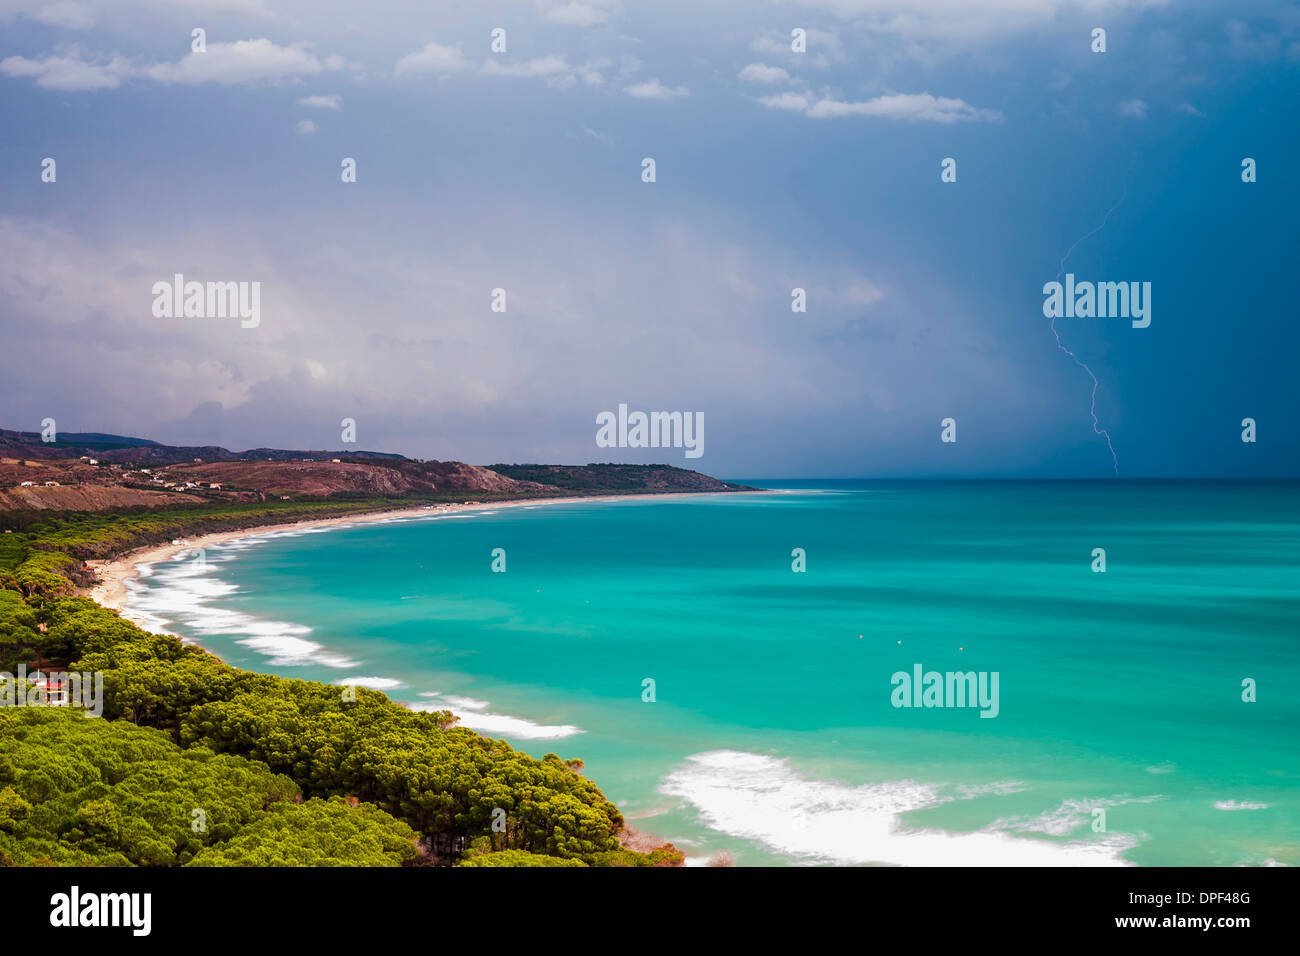 Thunder and lightning storm over Capo Bianco Beach and the Mediterranean Sea in the Province of Agrigento, Sicily, Stock Photo